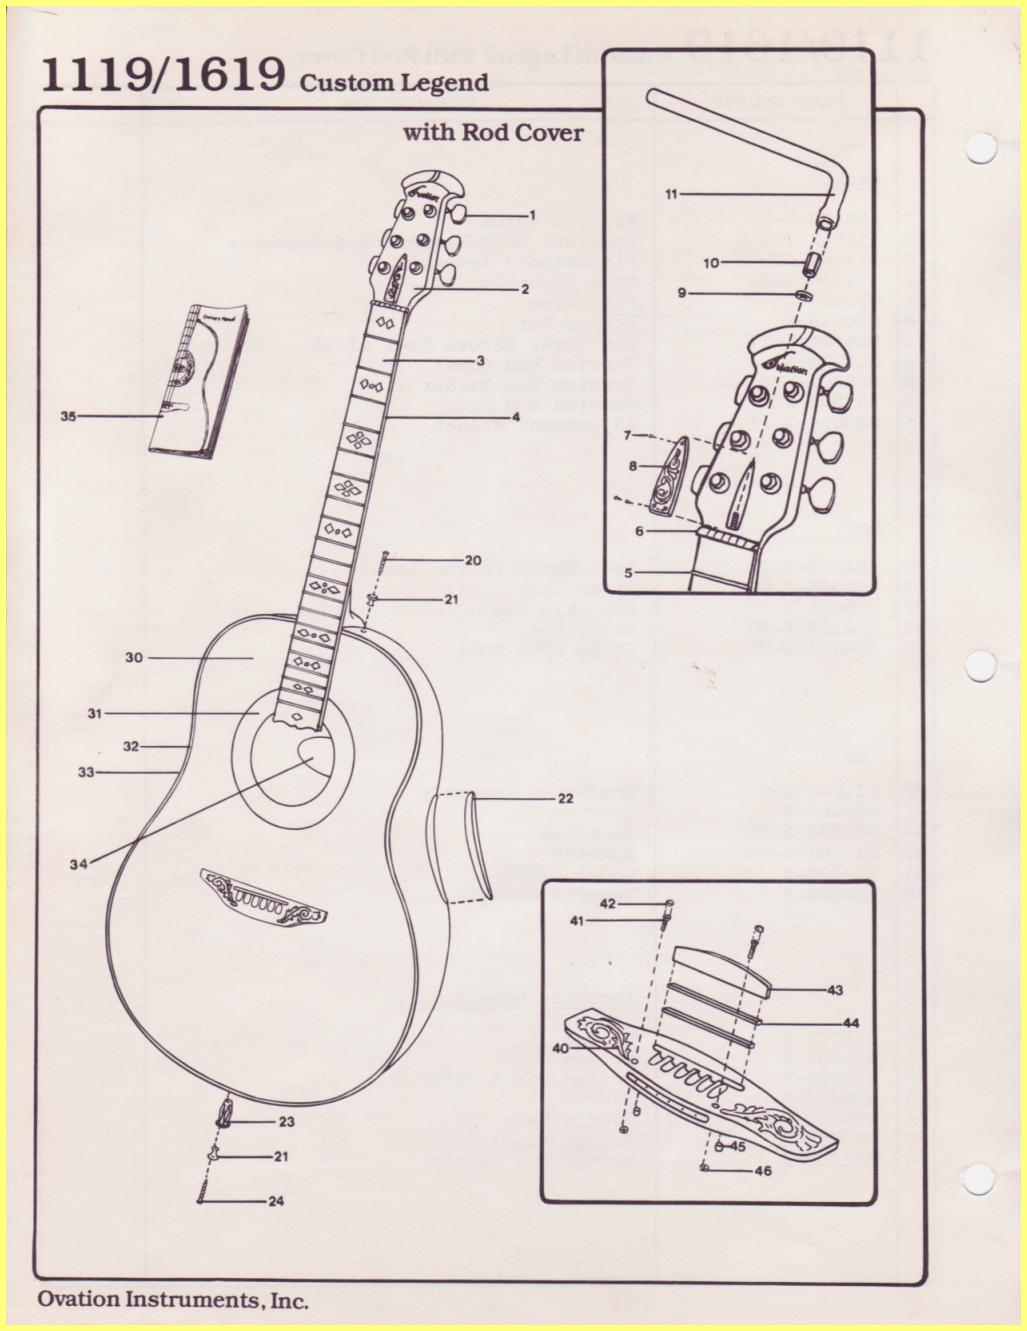 Ovation parts catalog 1119 1619 custom legend with rod cover cheapraybanclubmaster Choice Image